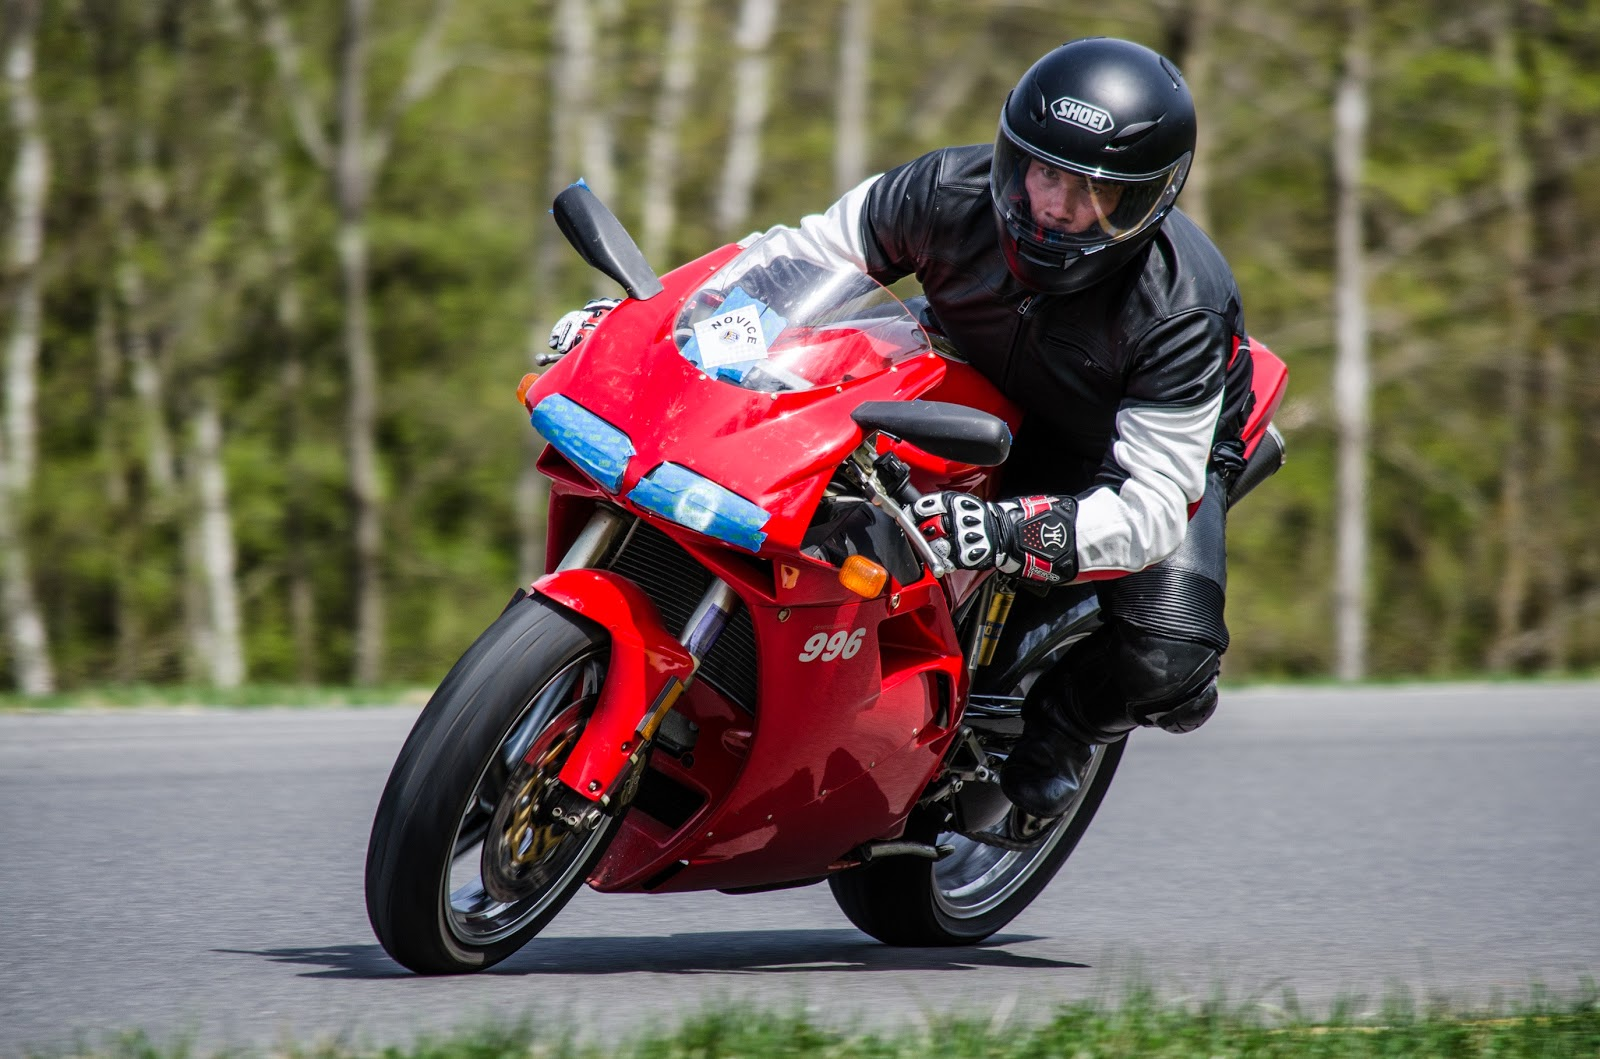 Tigh Loughhead Track Day: Tigho goes to New York Safety Track on his Ducati 996